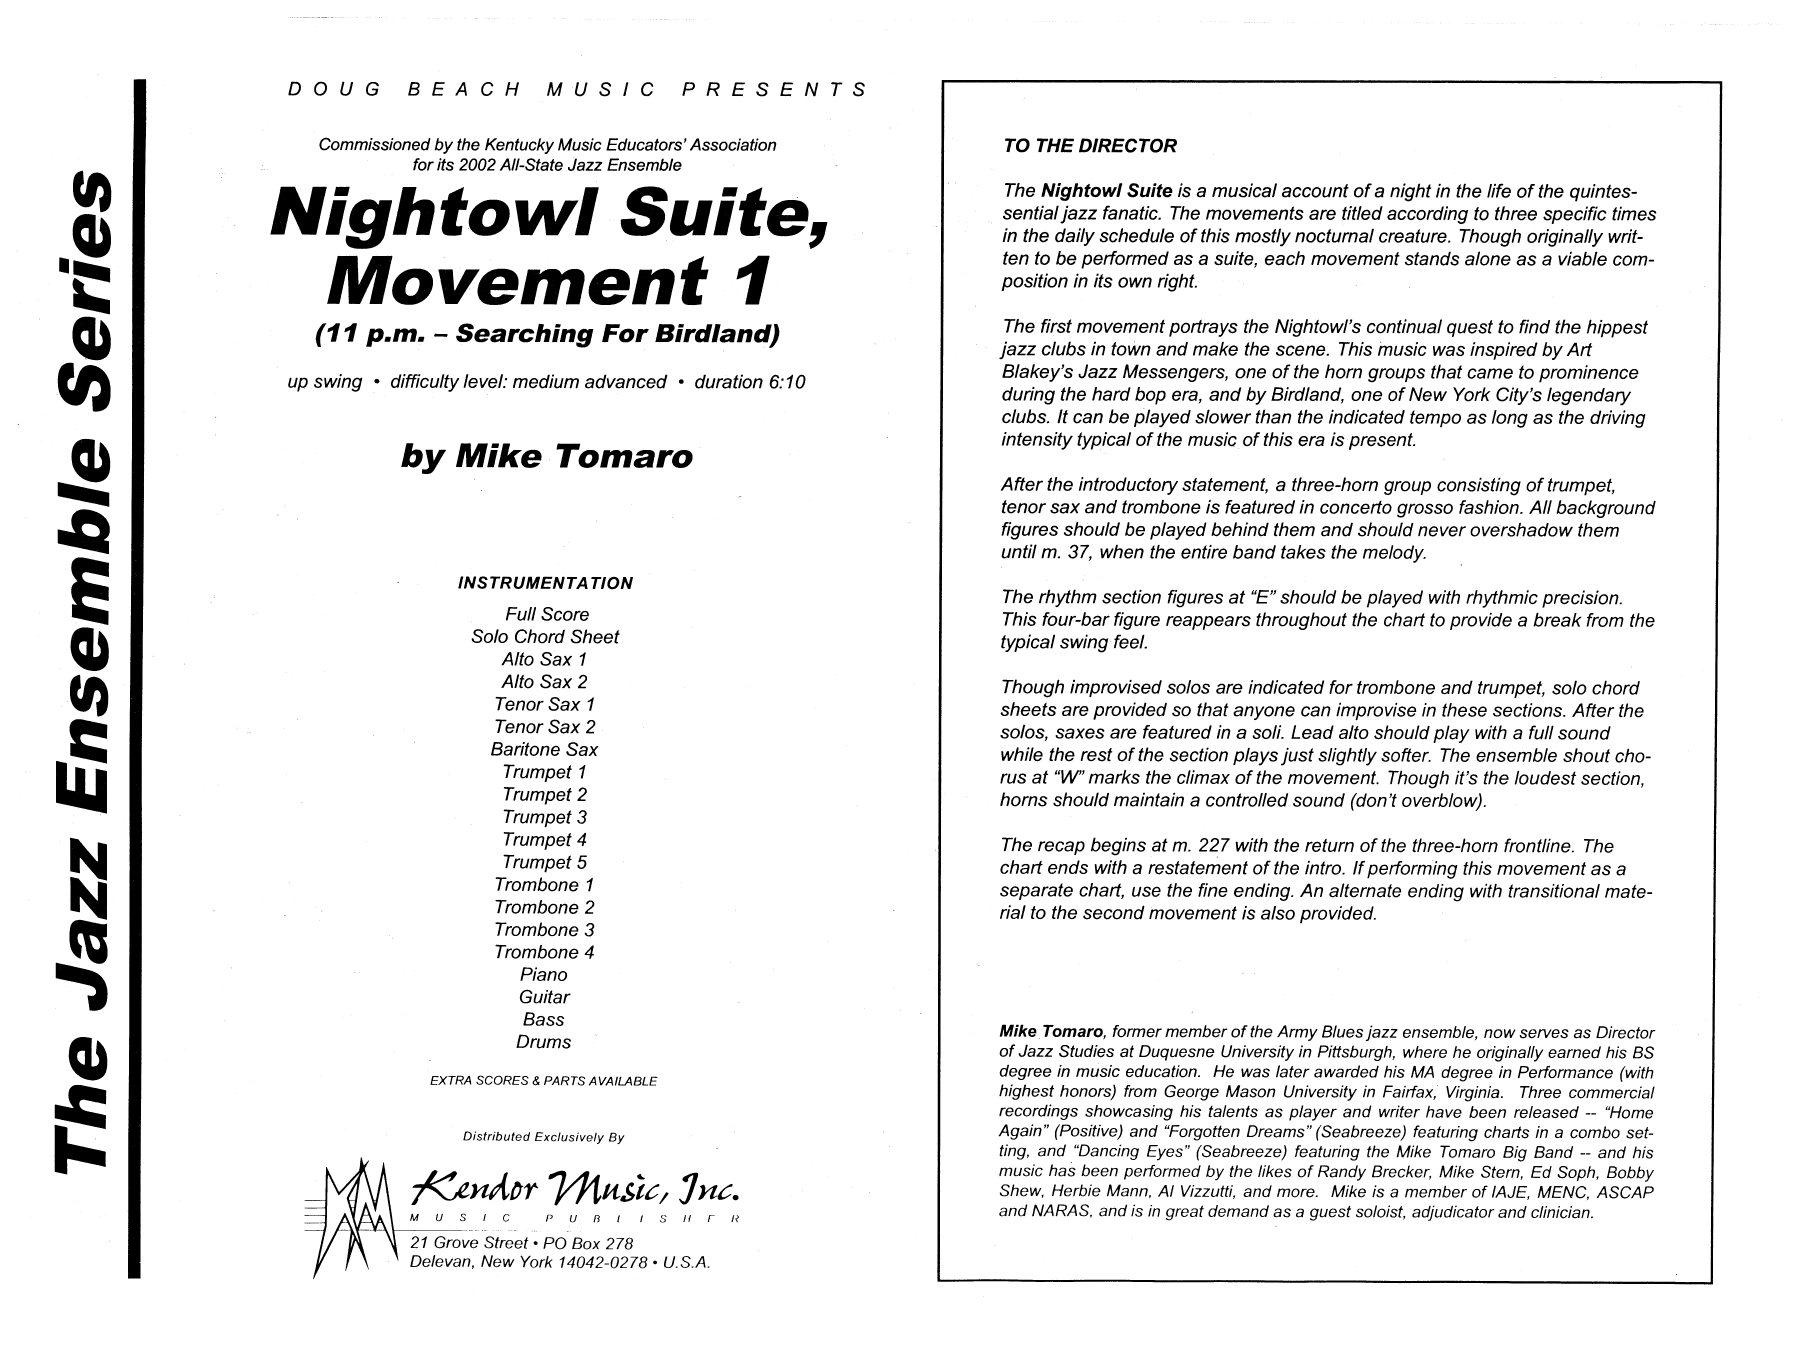 Nightowl Suite, Mvt. 1 - Full Score